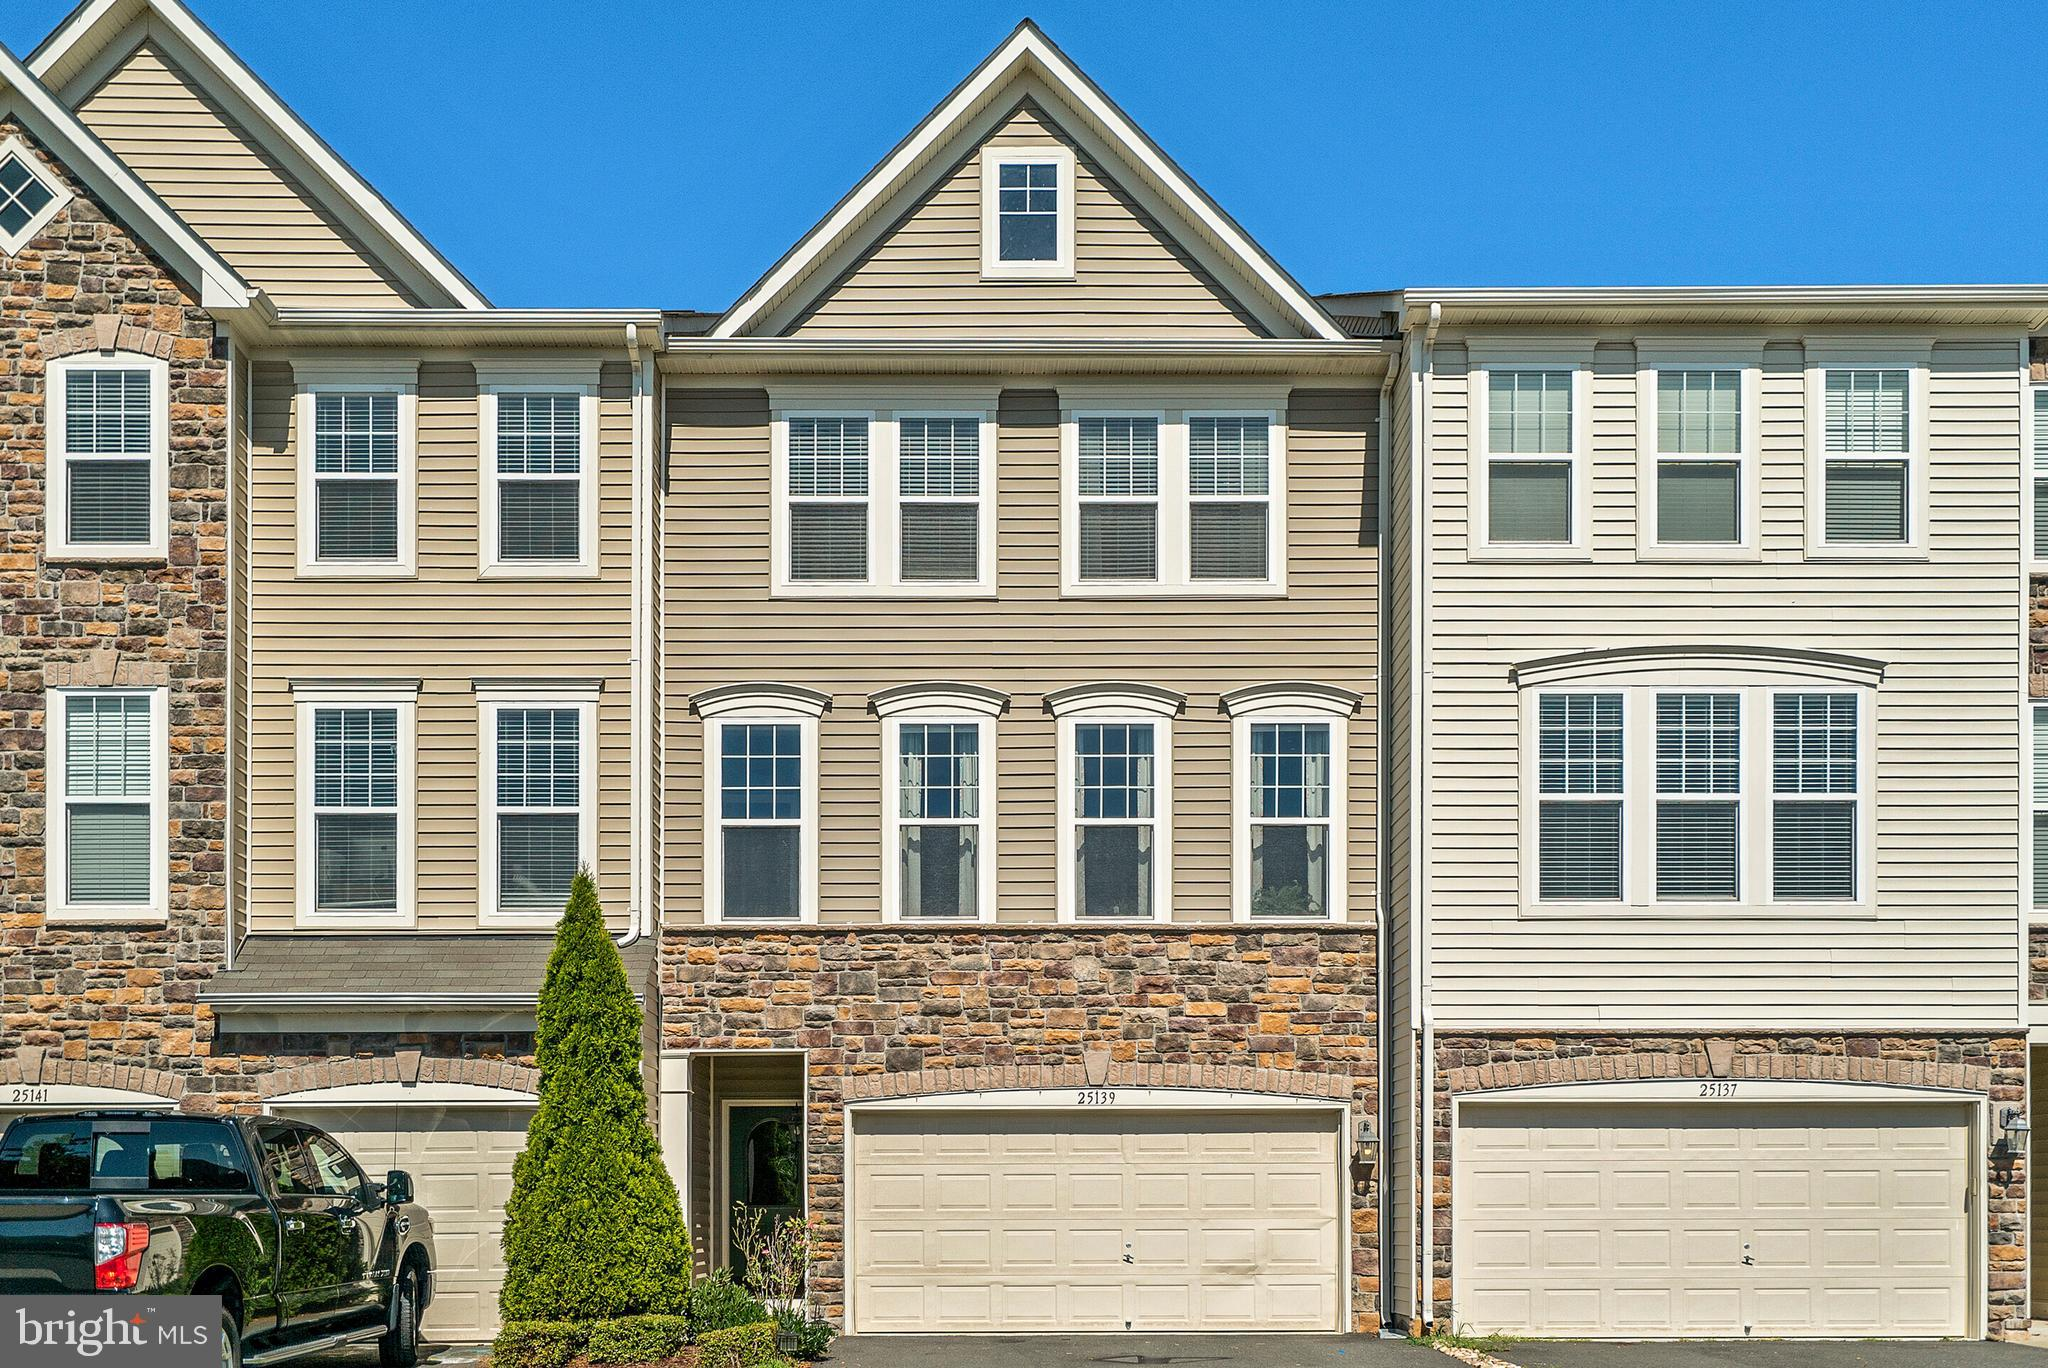 THIS WONDERFUL TOWNHOUSE IN A GREAT COMMUNITY NEEDS A NEW OWNER.  EVERYTHING YOU ARE LOOKING FOR- 2